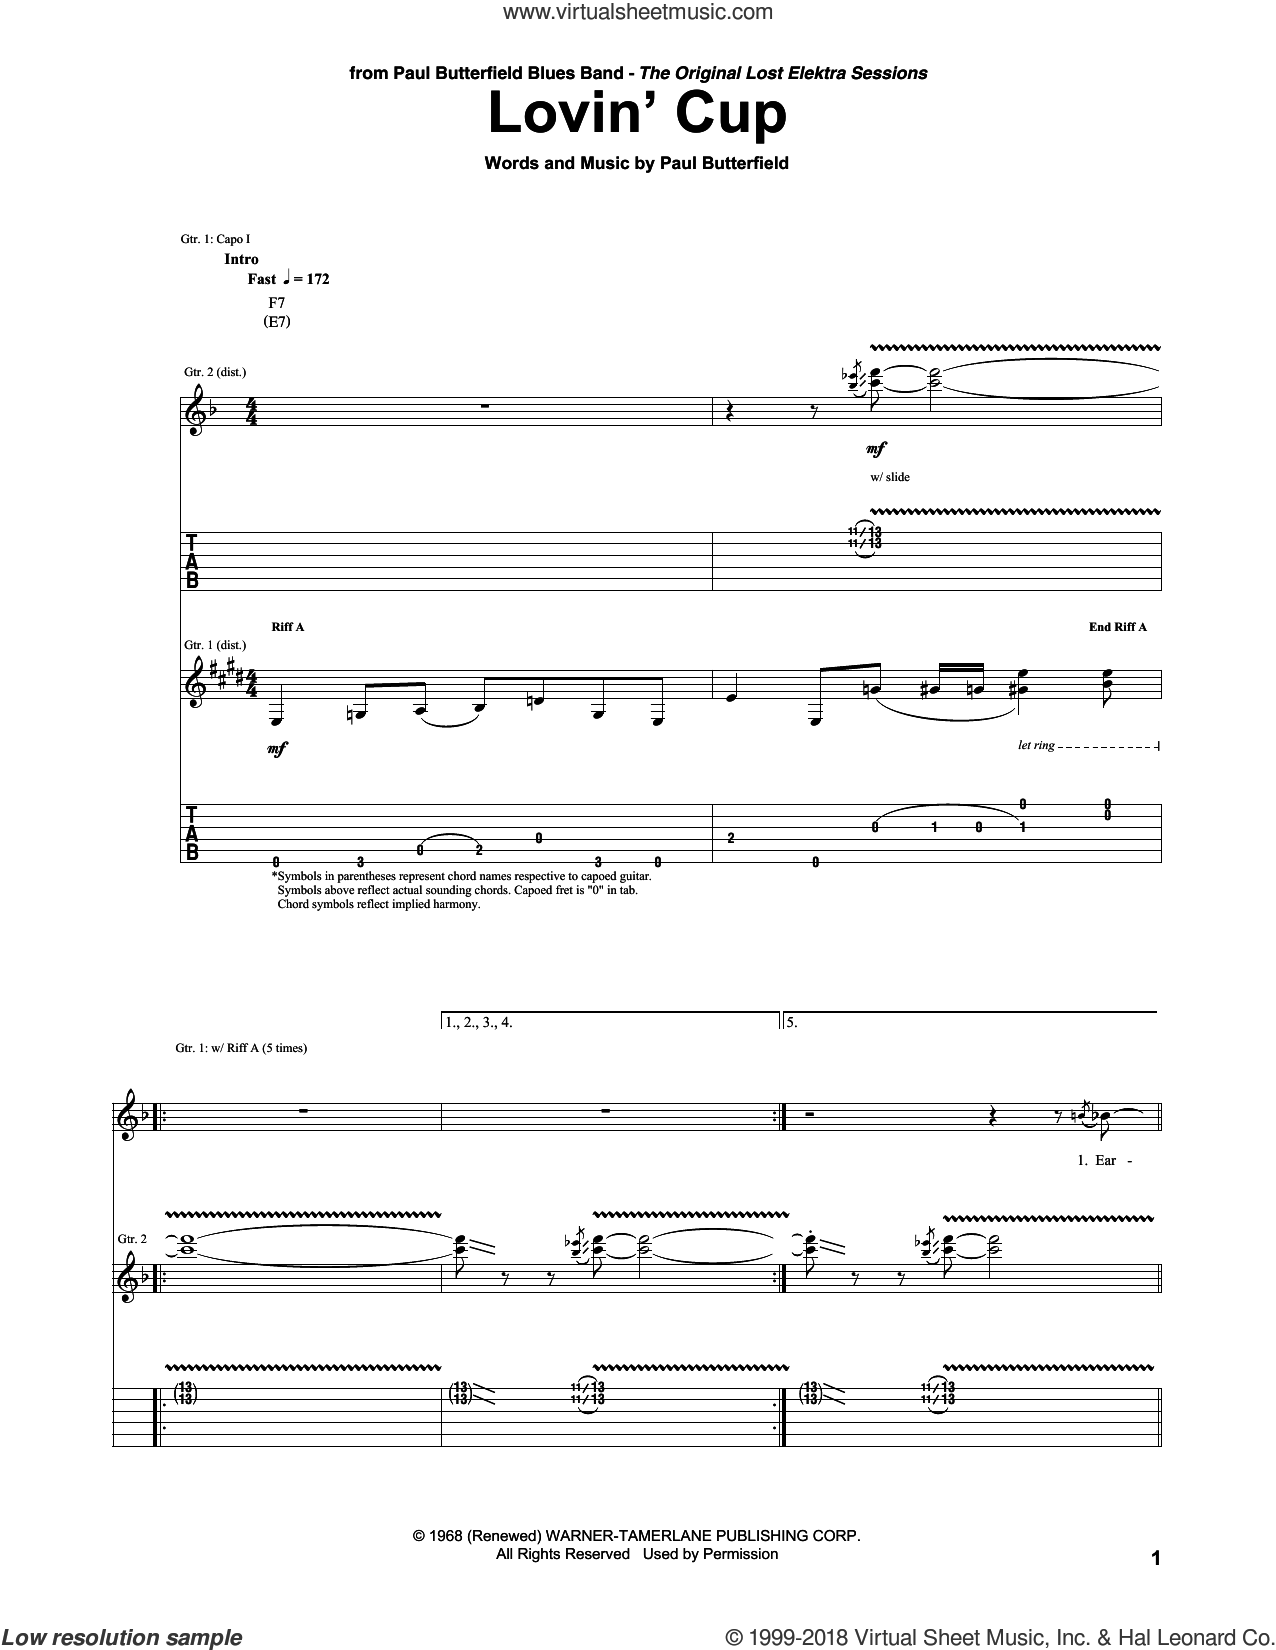 Lovin' Cup sheet music for guitar (tablature) by The Paul Butterfield Blues Band, Mike Bloomfield and Paul Butterfield, intermediate skill level